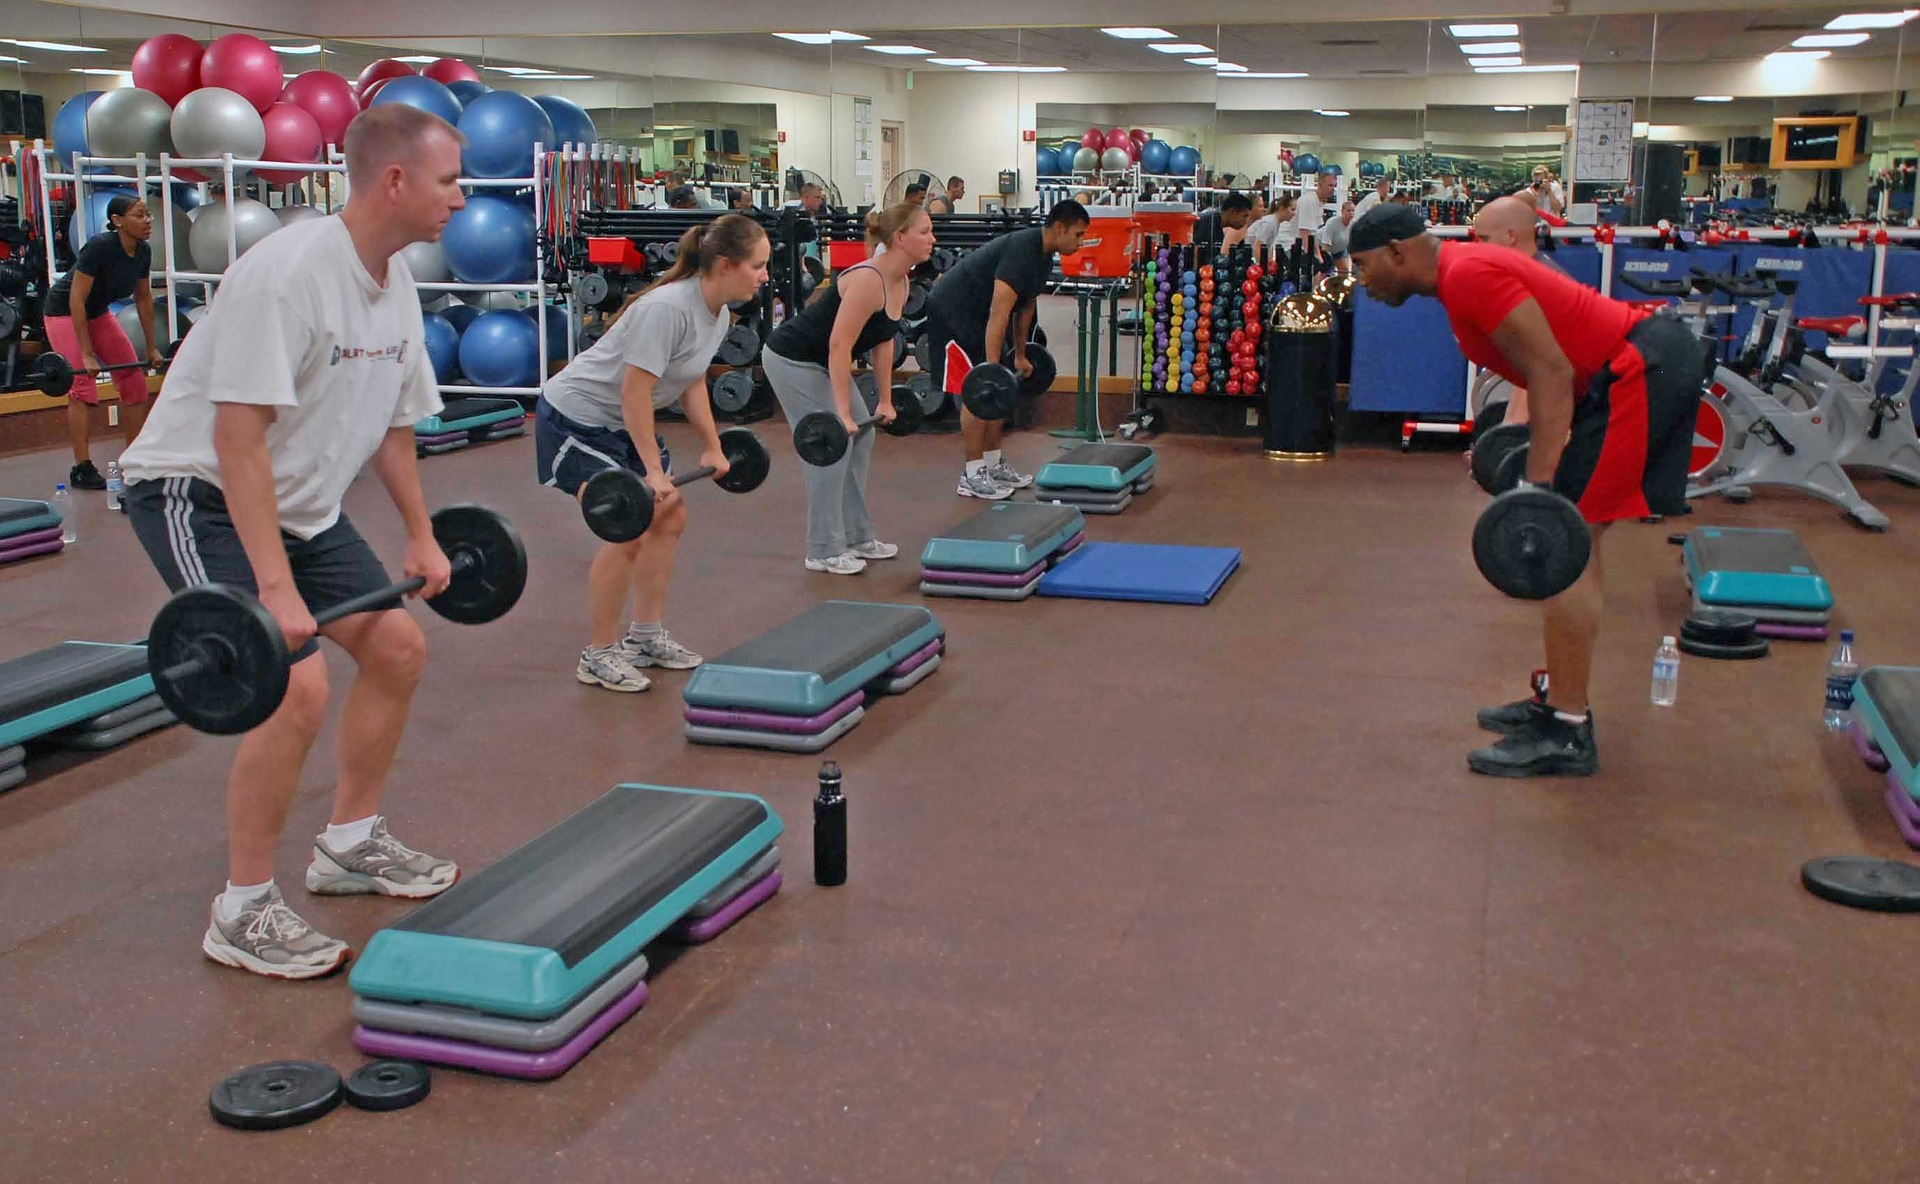 online personal training,personal trainers northampton,Personal Training,personal trainer,nutrition coaching